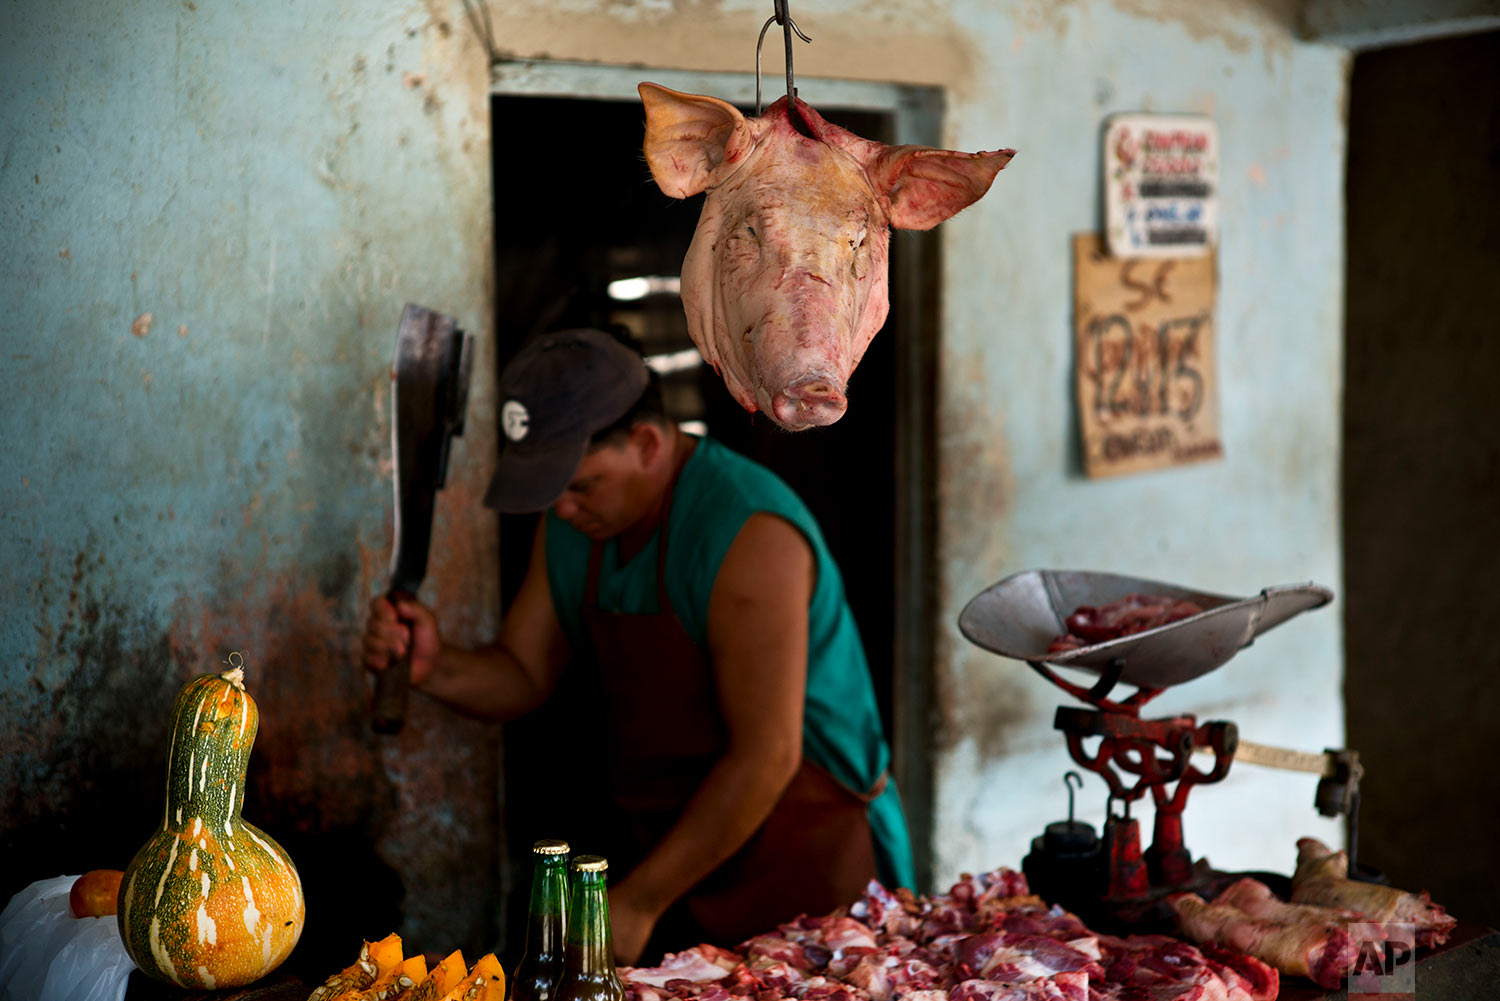 """A butcher works in Guantanamo, Cuba, July 25, 2018. Pork is the most accessible meat in Cuba, where the pig has its own song: """"El Puerco Mamifero Nacional,"""" or National Mammal Pork,"""" sung by the Buena Fe band."""